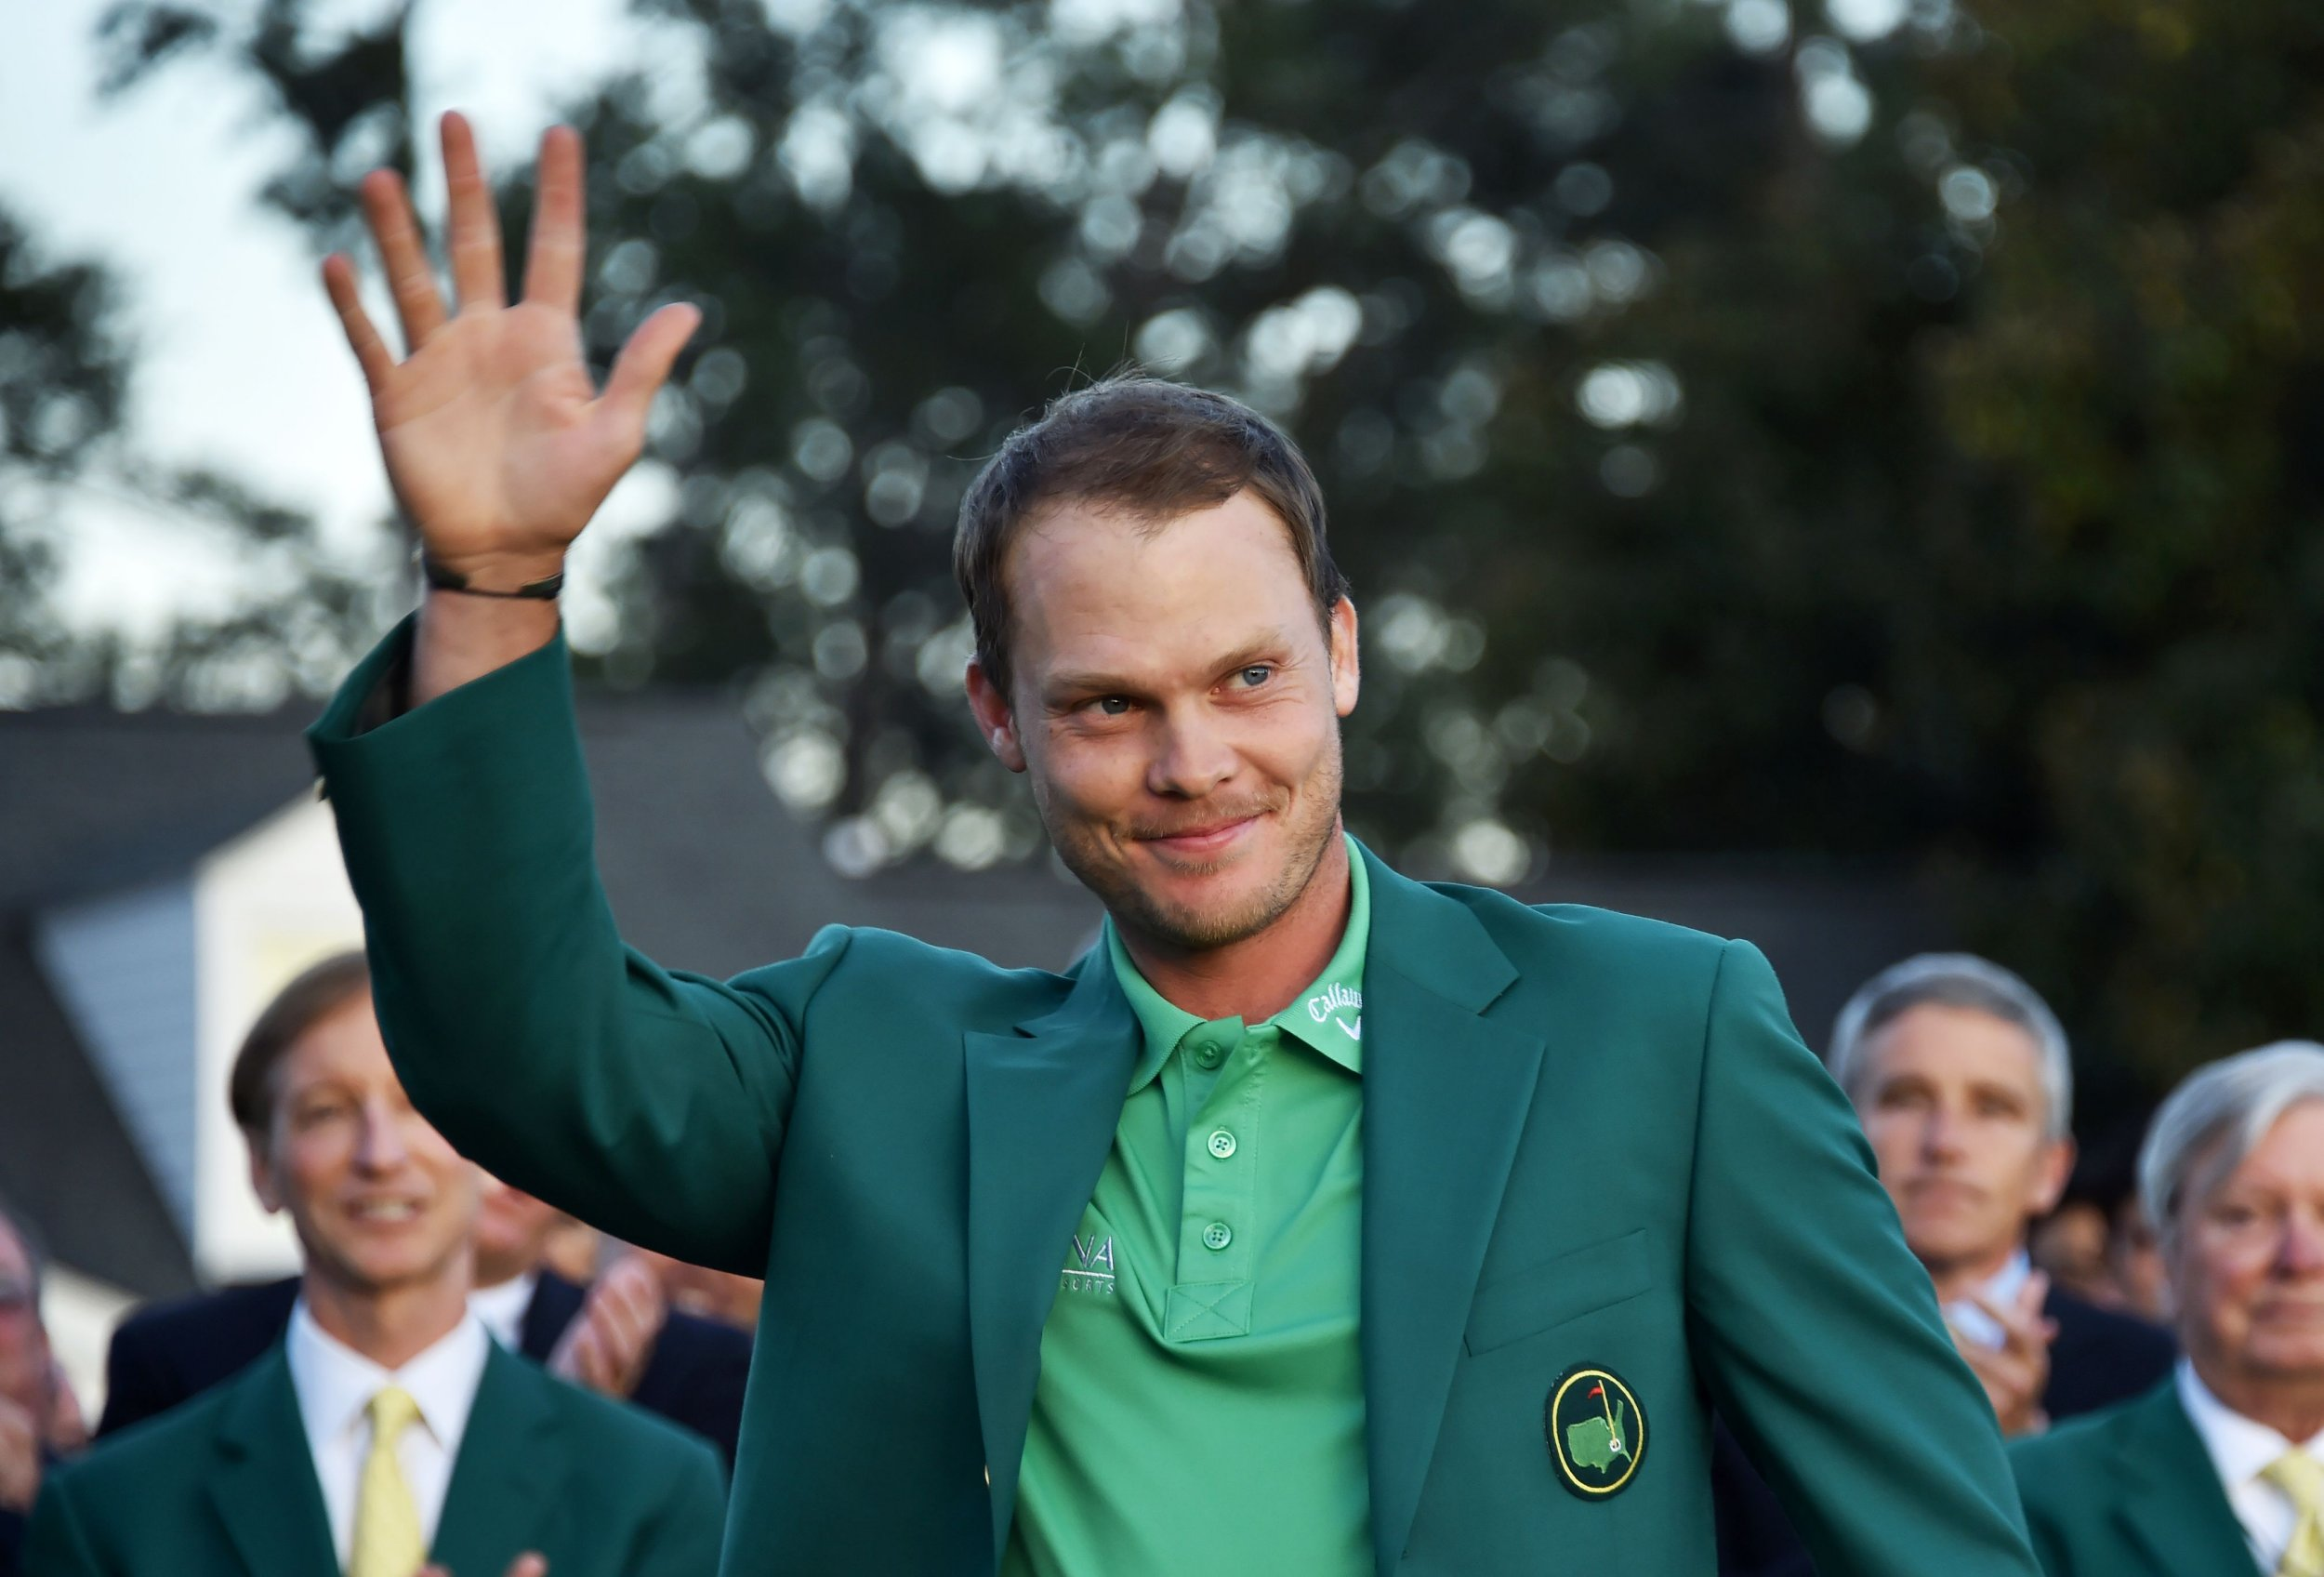 England's Danny Willett waves wearing the Green Jacket at the end of the 80th Masters Golf Tournament at the Augusta National Golf Club on April 10, 2016, in Augusta, Georgia. England's Danny Willett won the 80th Masters at Augusta National on Sunday for his first major title. He was trailing defending champion Jordan Spieth by five strokes around the turn, but stormed down the back nine to overhaul the American. Willett is the first Englishman since Nick Faldo 20 years ago to win the Masters and only the second all-time. / AFP PHOTO / Nicholas KammNICHOLAS KAMM/AFP/Getty Images